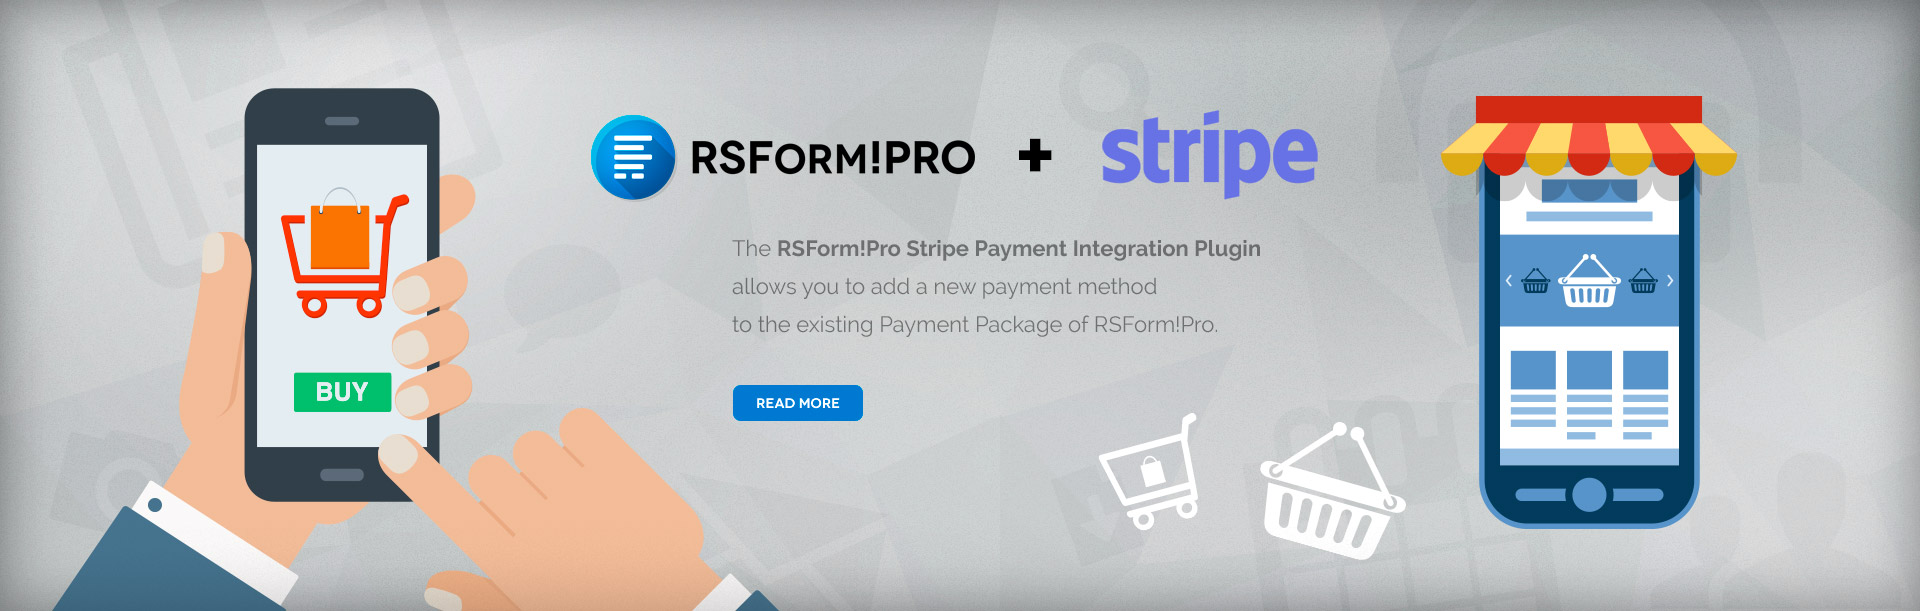 RSForm!Pro Stripe integration